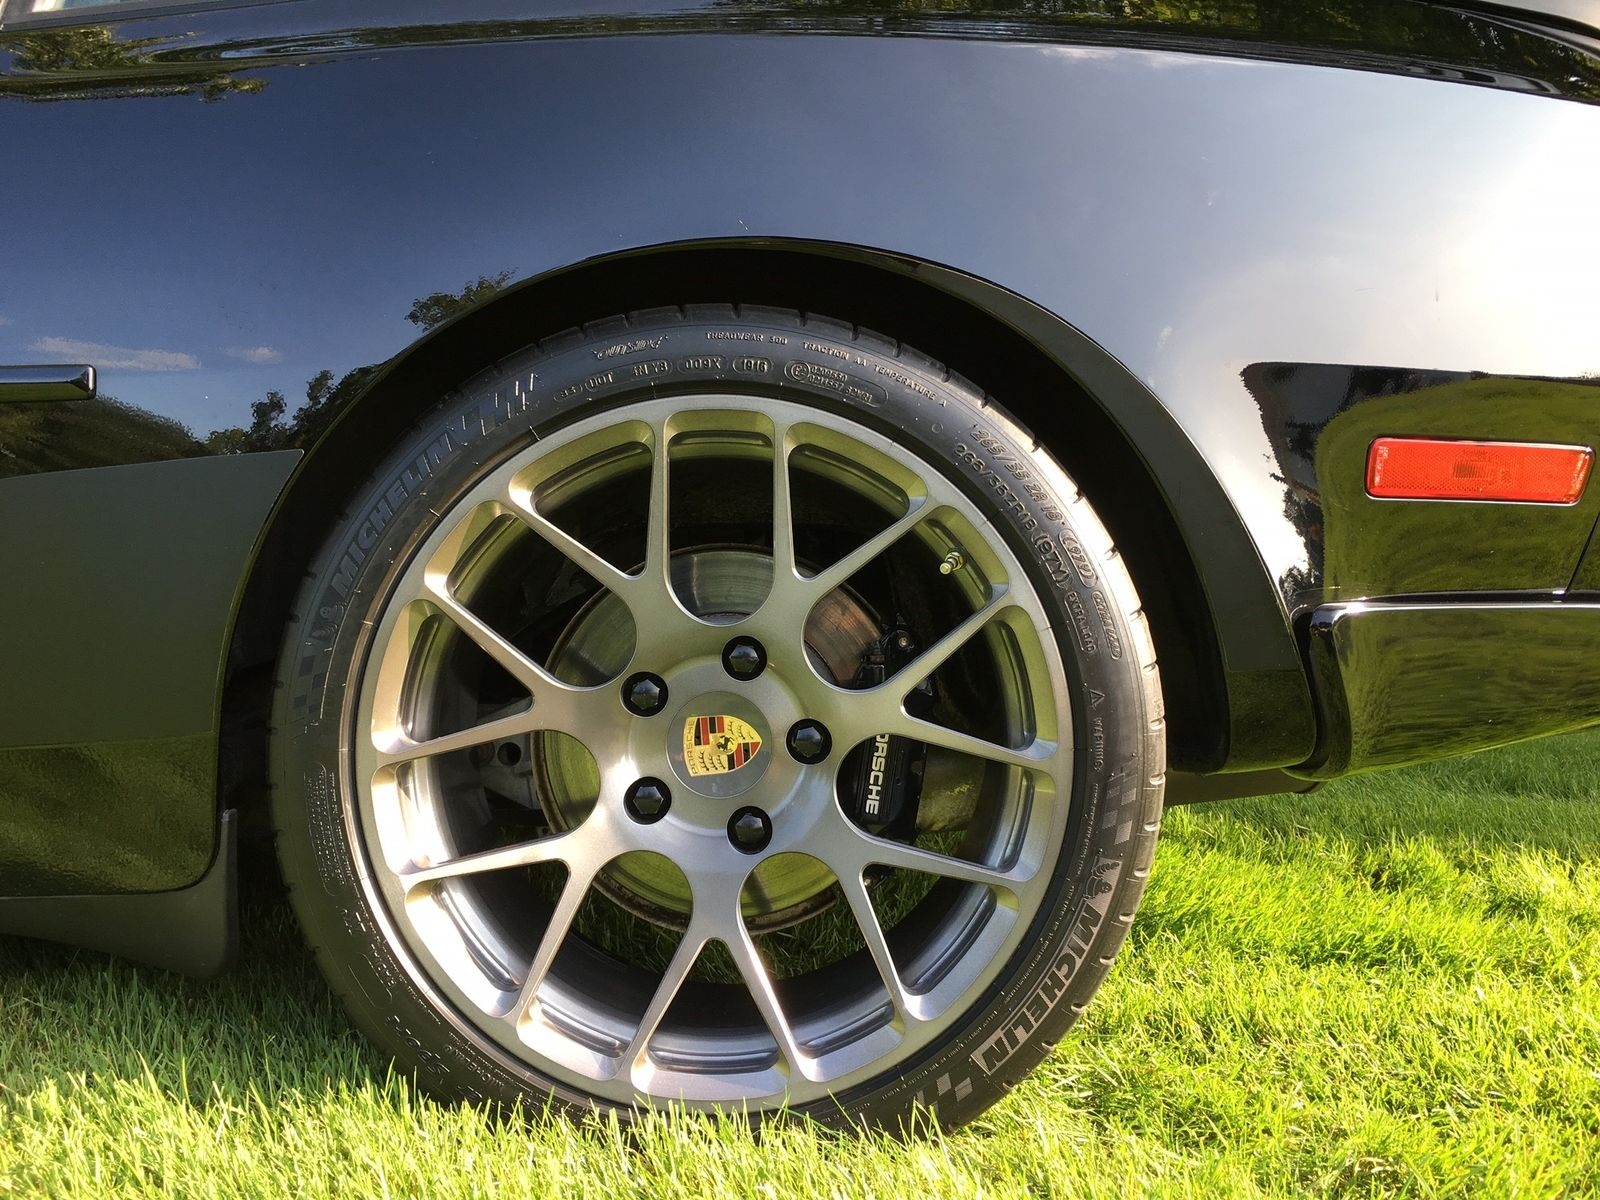 1989 Porsche 944 | Wheel Enhancement Fit This Porsche 944 Turbo on Forgeline One Piece Forged Monoblock SE1 Wheels